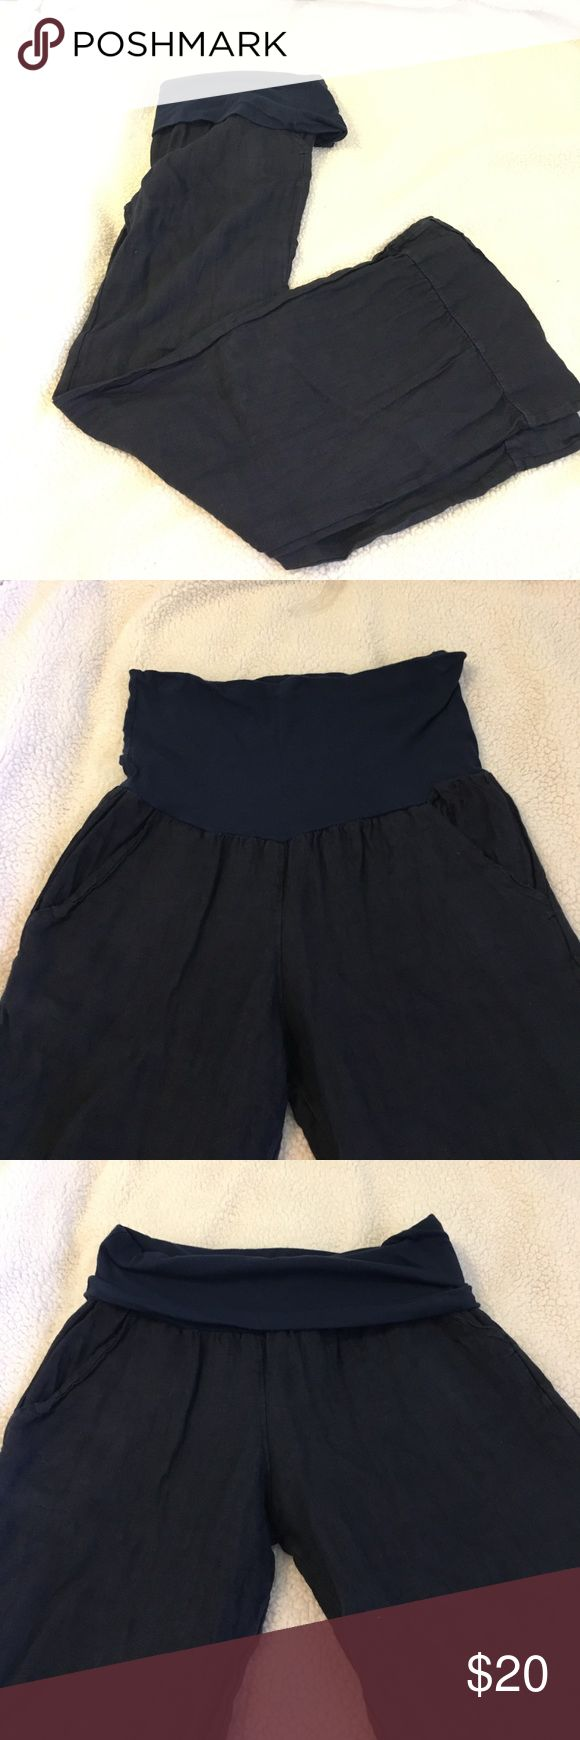 Authentic Italian linen pants I bought these in a small market while living in Italy. Unfortunately, I was only able to wear a few times and they no longer fit. They are a dark navy blue color and 100% linen. There is a high, adjustable waistband (see images). The pant is a boot cut and is wide on the bottom. The size is European small. So amazing for travel. Pants